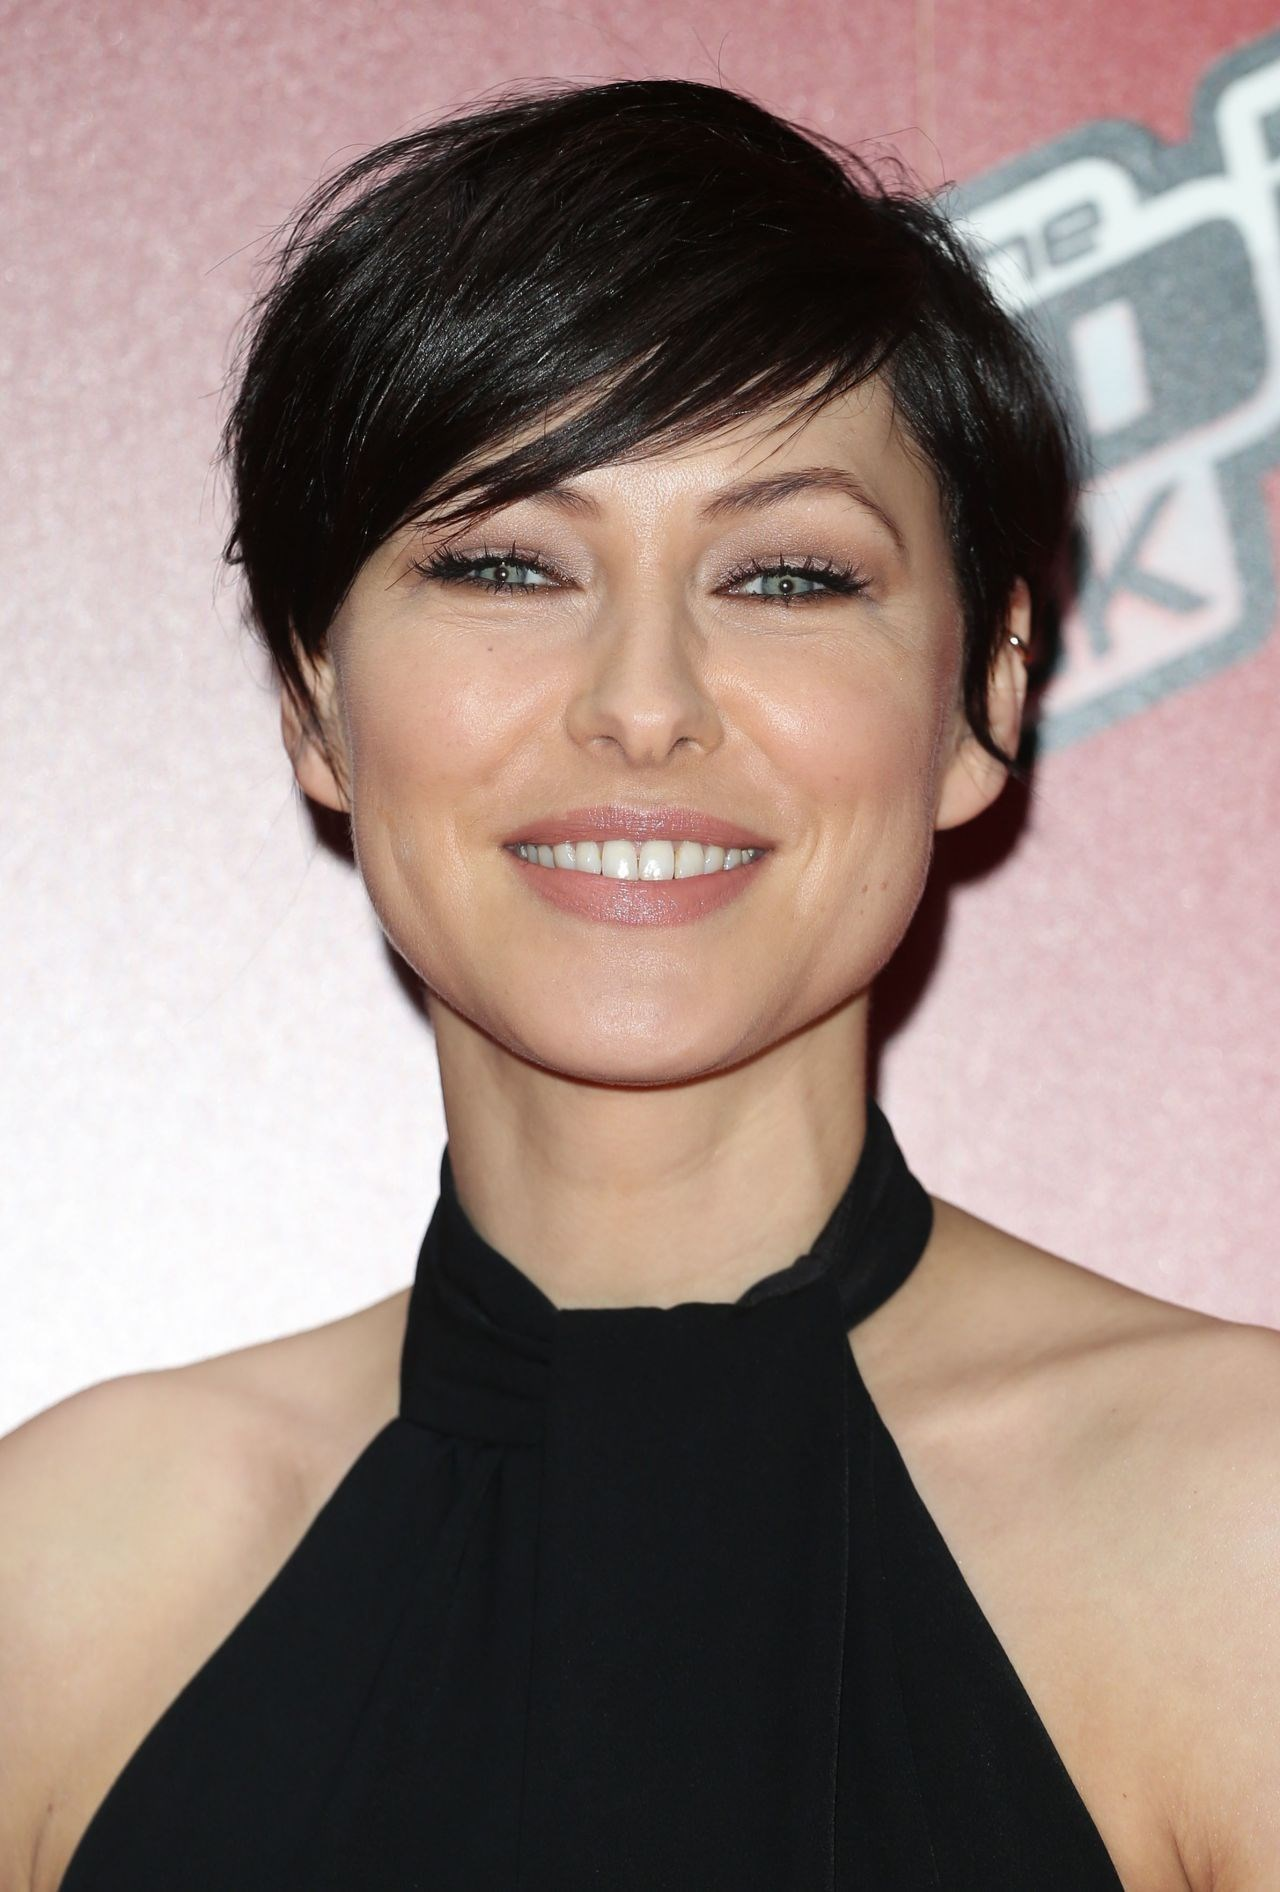 Emma Willis nudes (81 fotos), photos Feet, Twitter, legs 2016